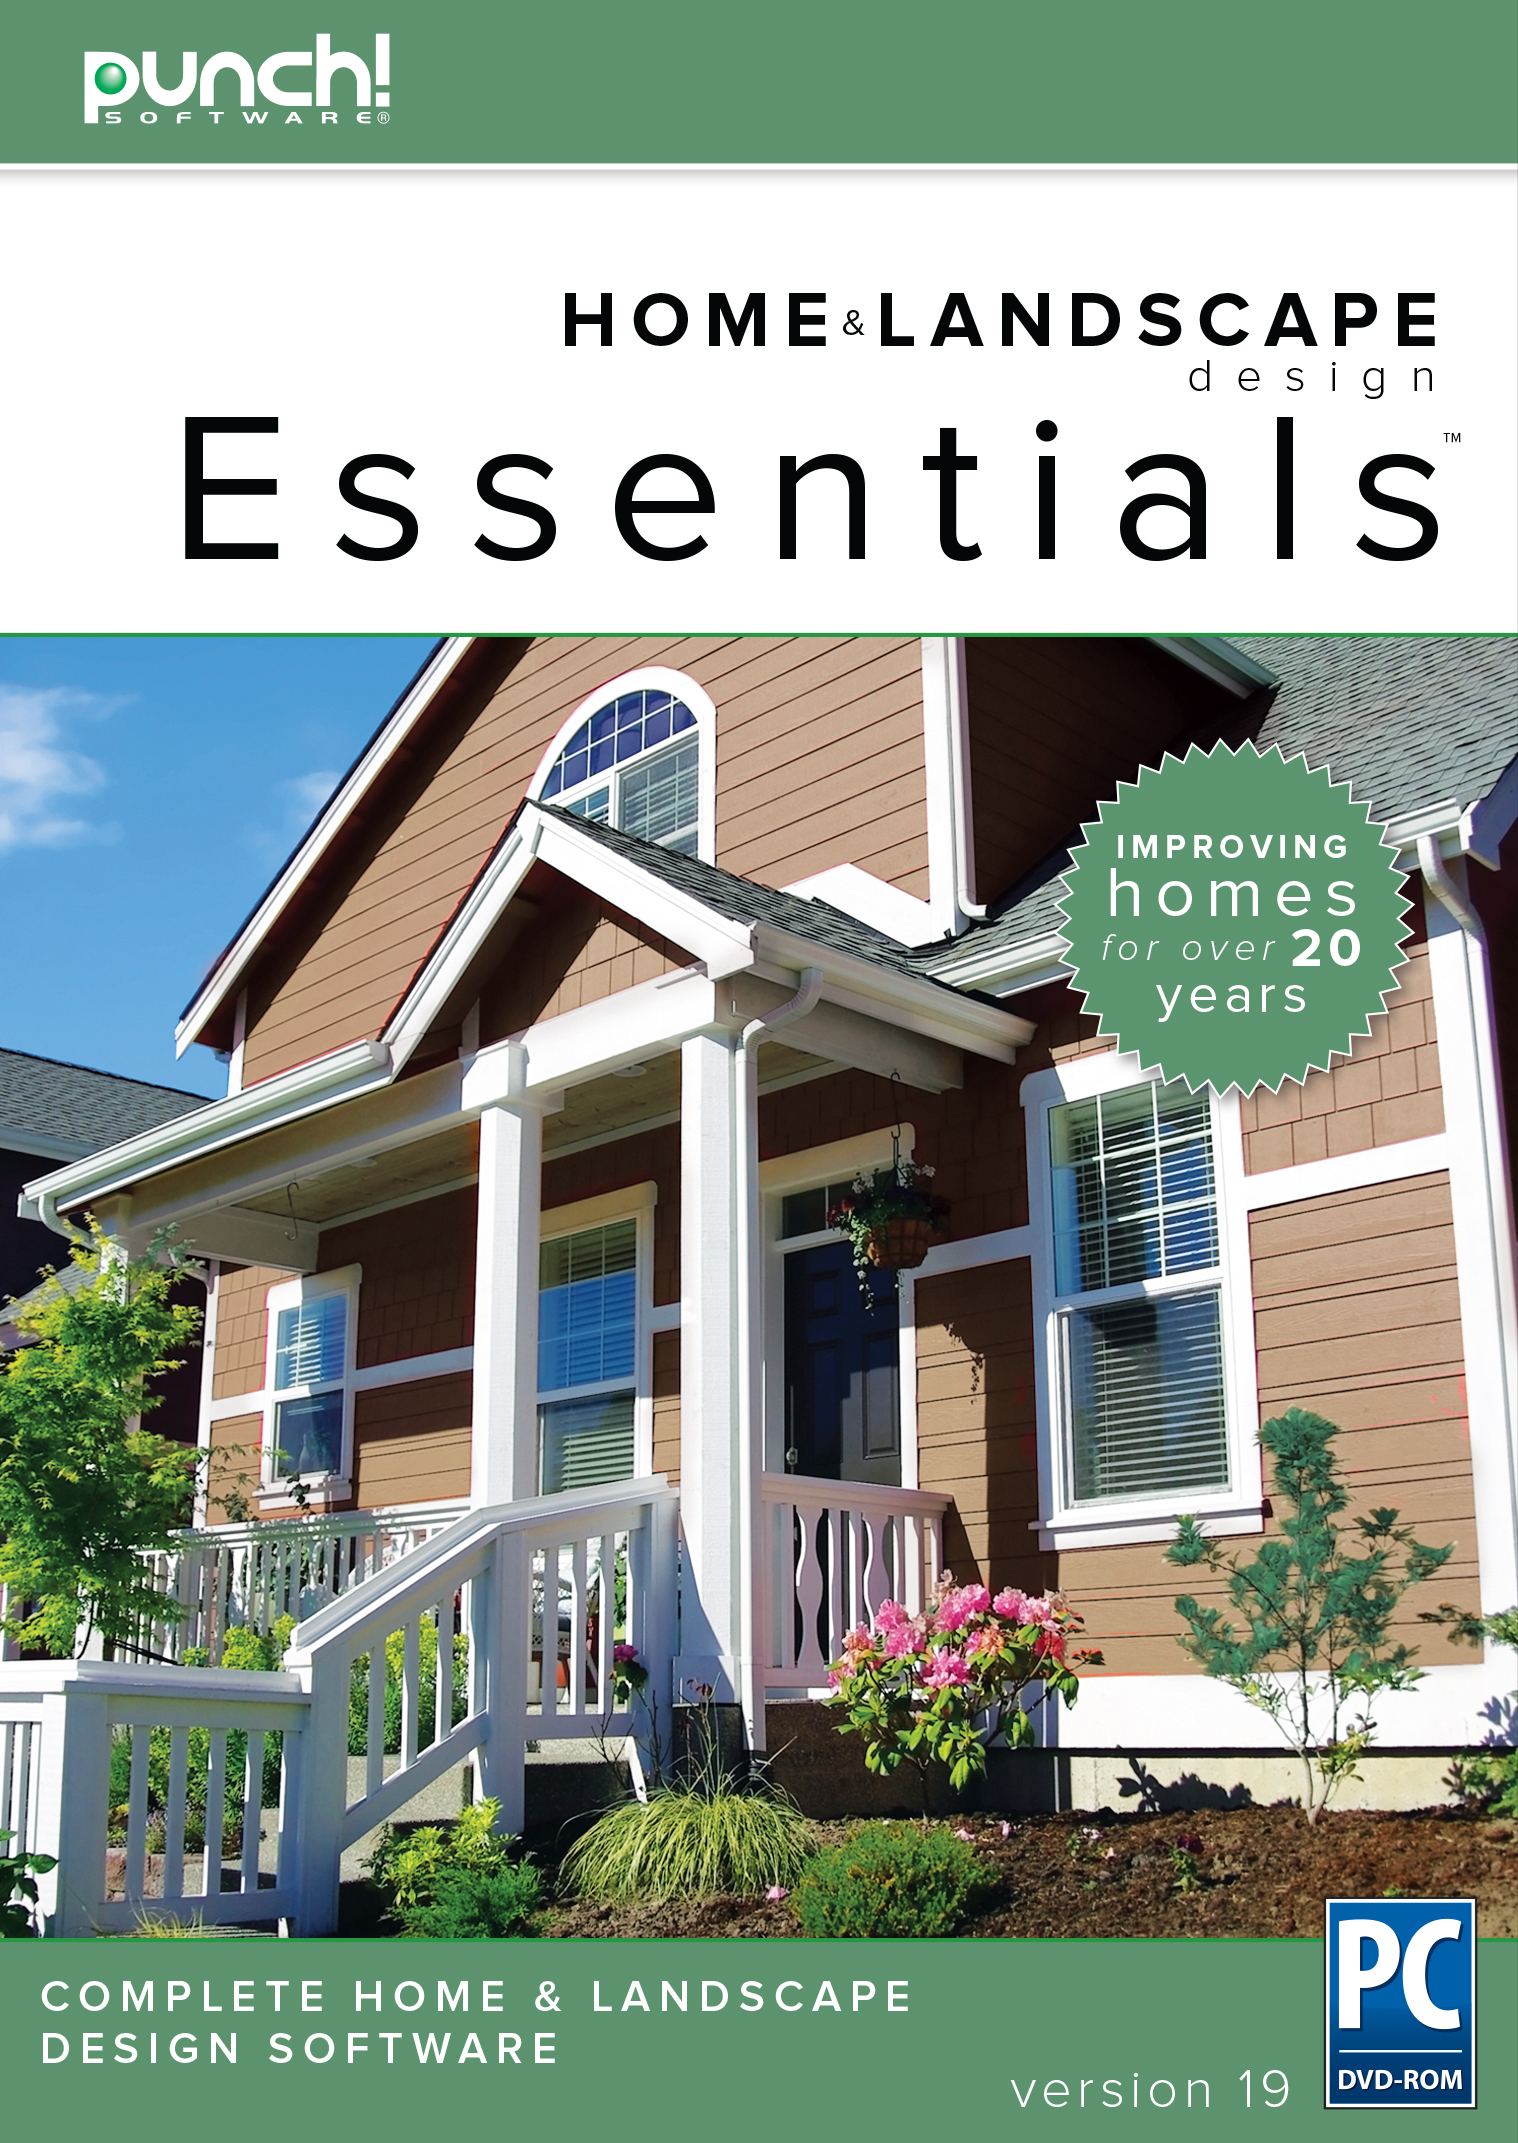 Punch home landscape design essentials v19 home - Best home and landscape design software ...